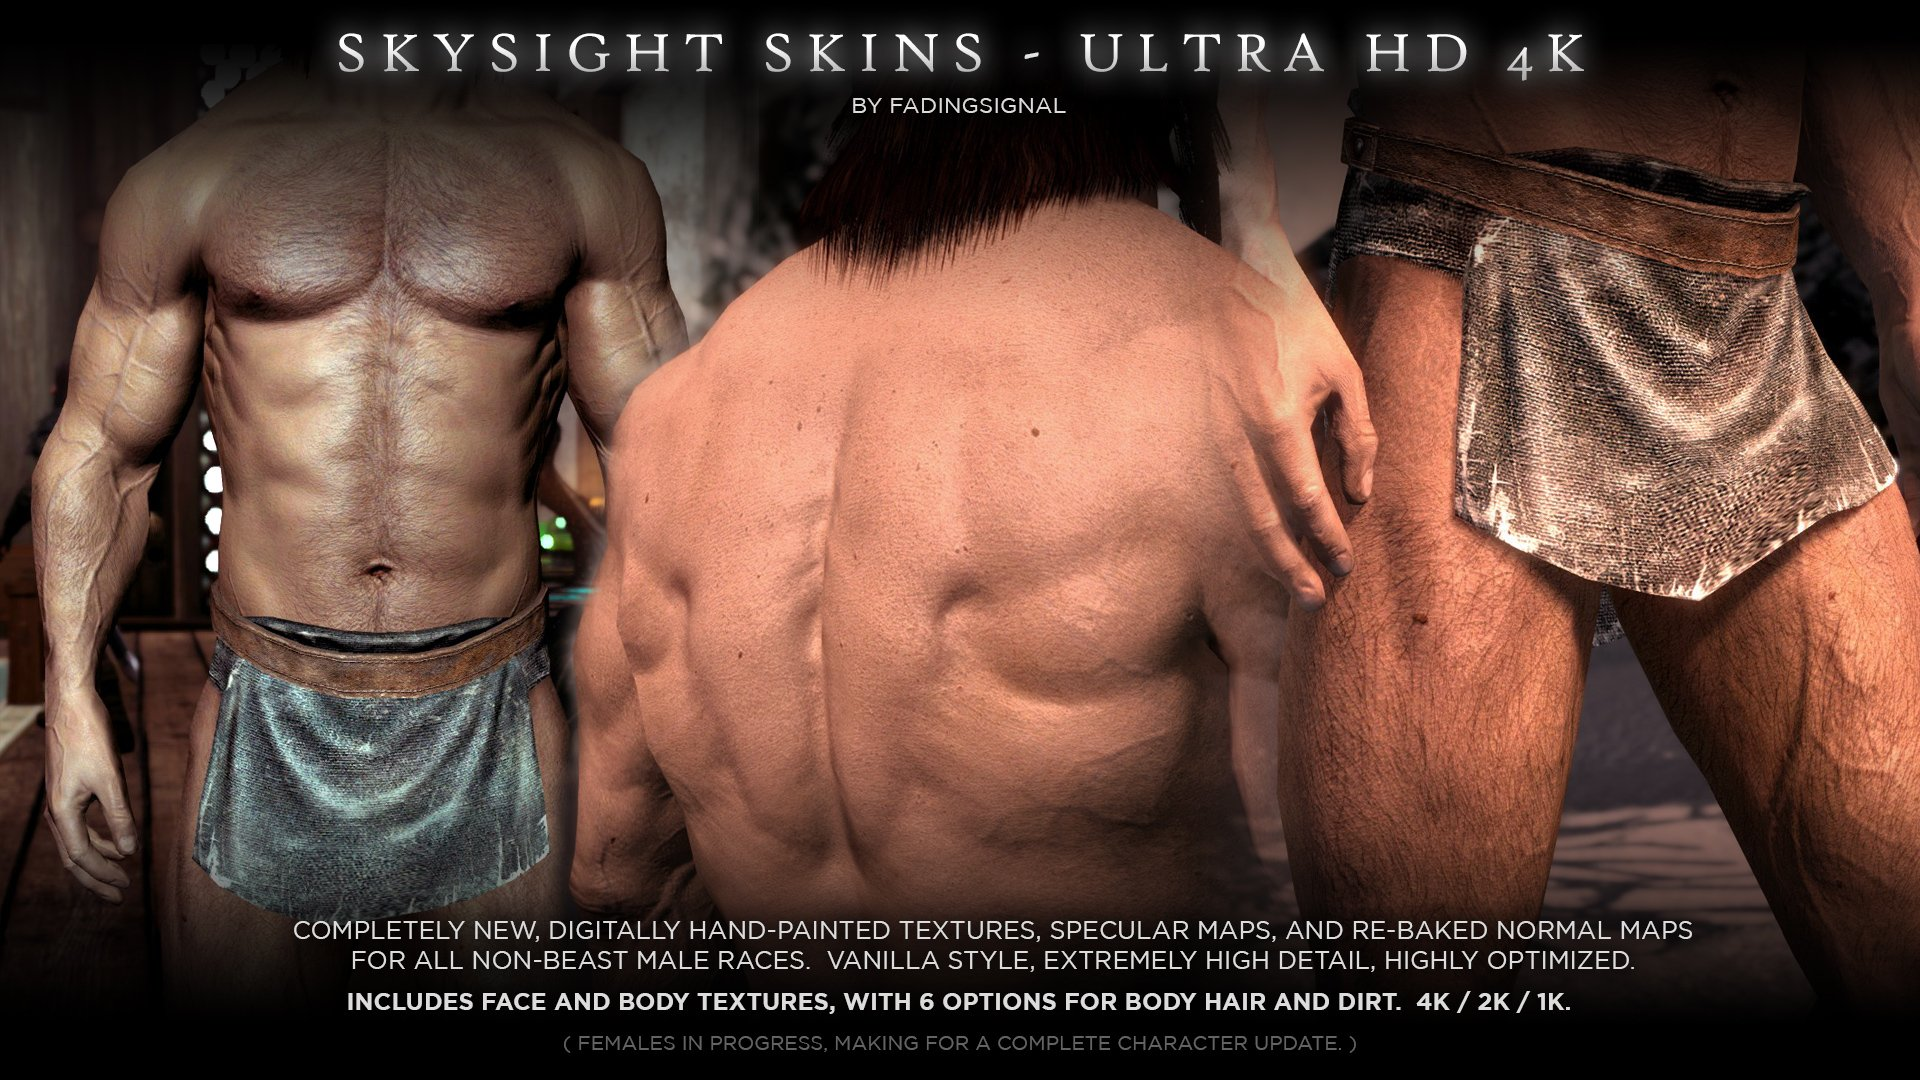 Skysight skins ultra hd 4k 2k male textures and real feet meshes skysight skins ultra hd 4k 2k male textures and real feet meshes2 voltagebd Image collections